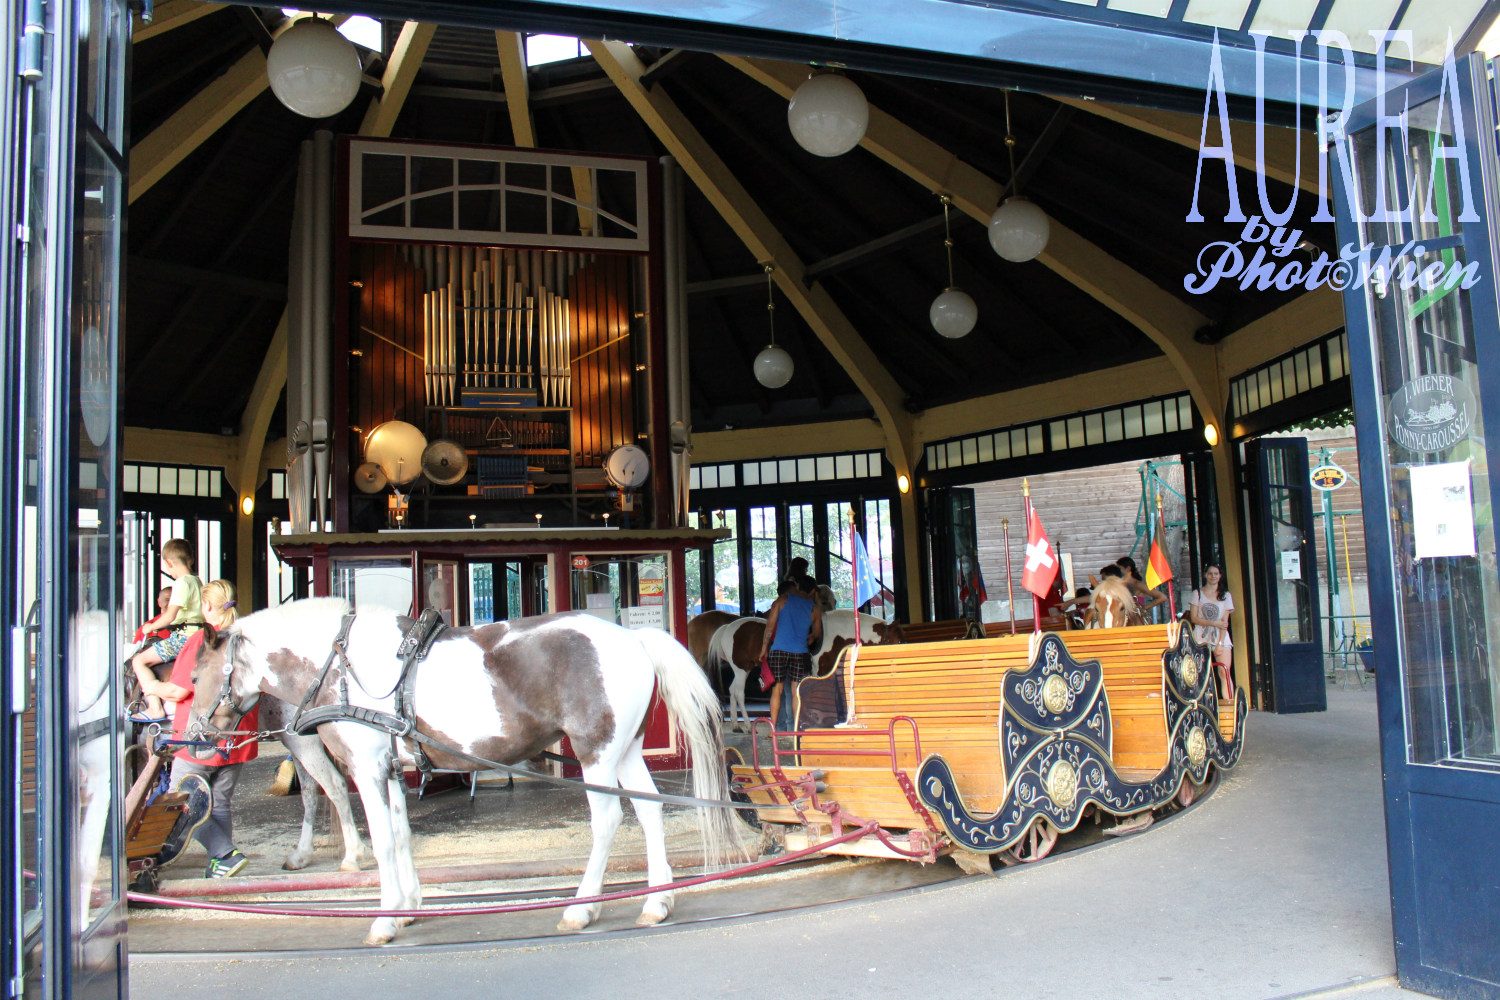 Prater_Pony Karussell